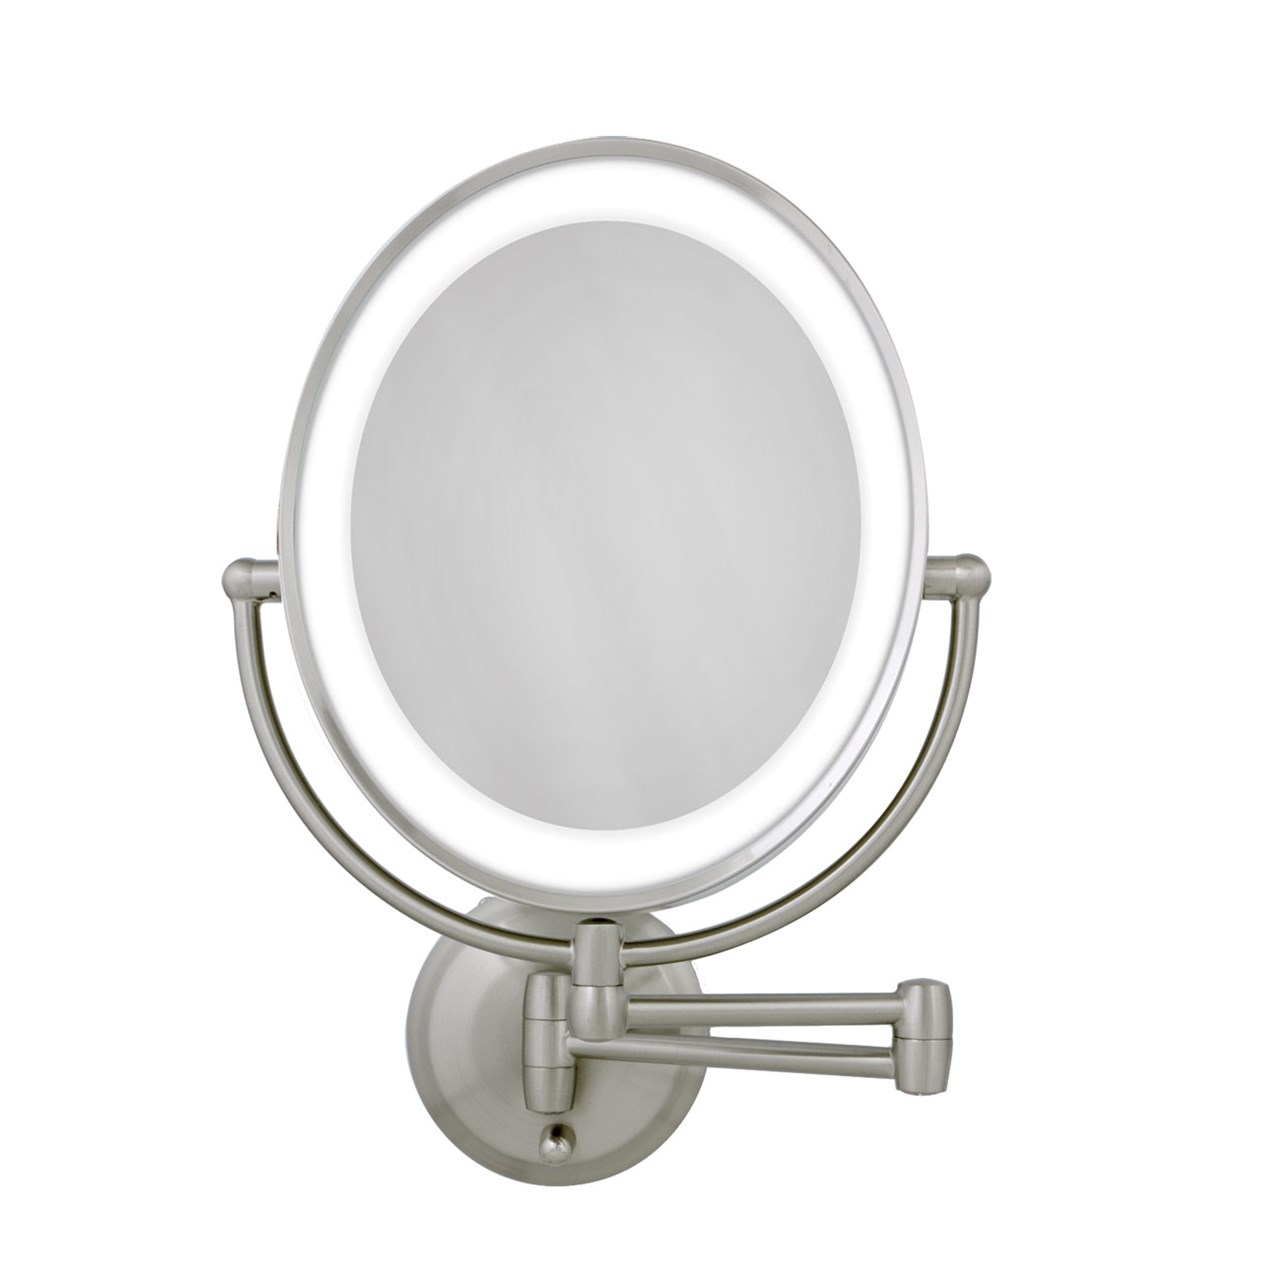 Maxiaids Led Lighted Wall Mount Oval Make Up Mirror 10x 1x